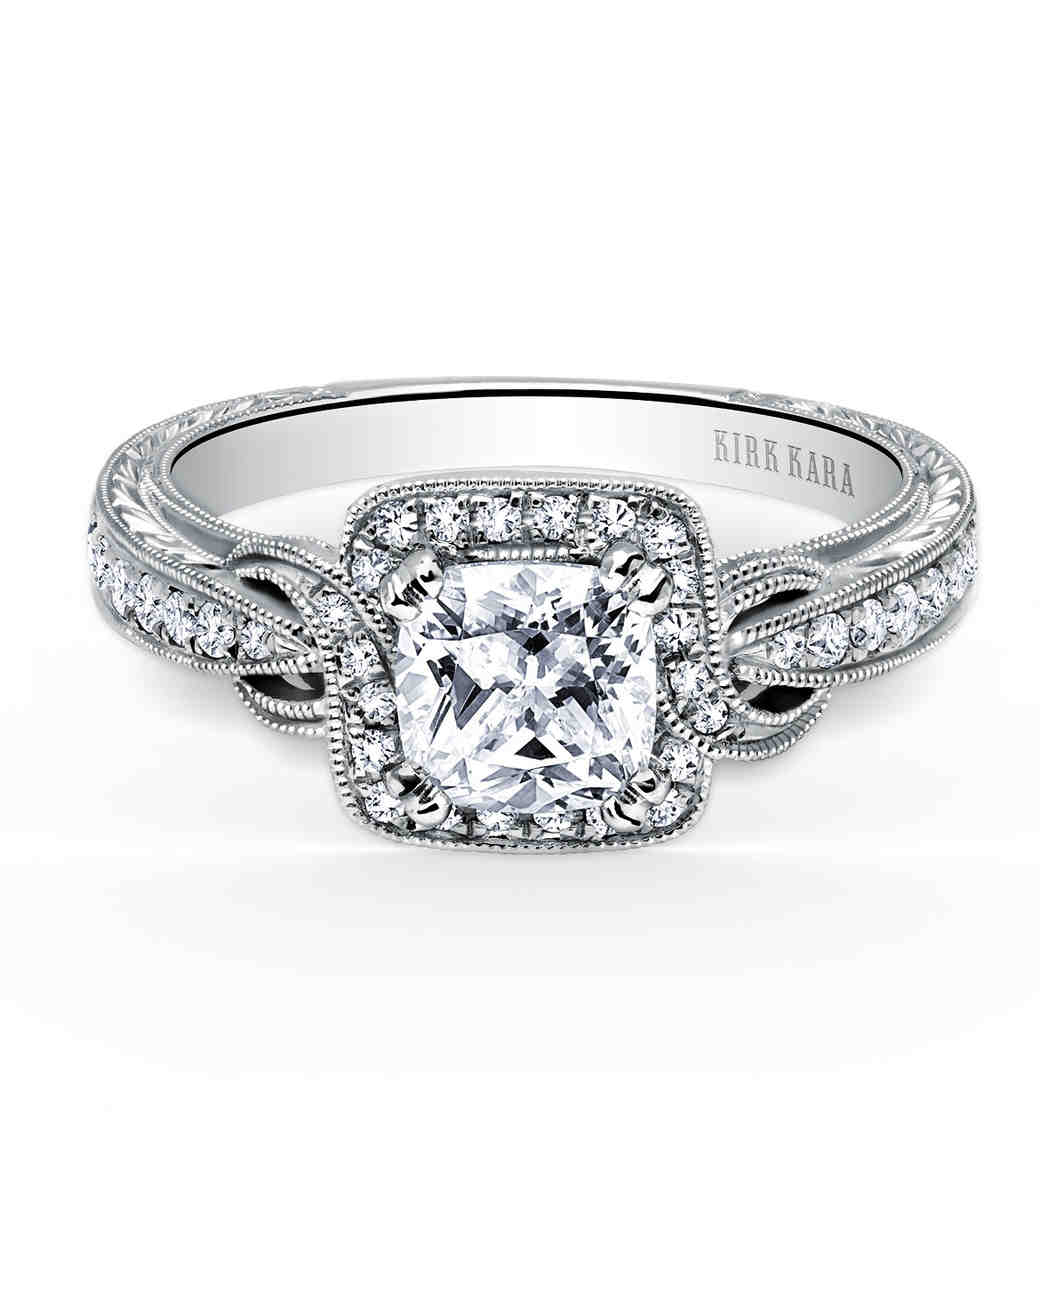 Kirk Kara Pirouette Cushion-Cut Diamond Engagement Ring